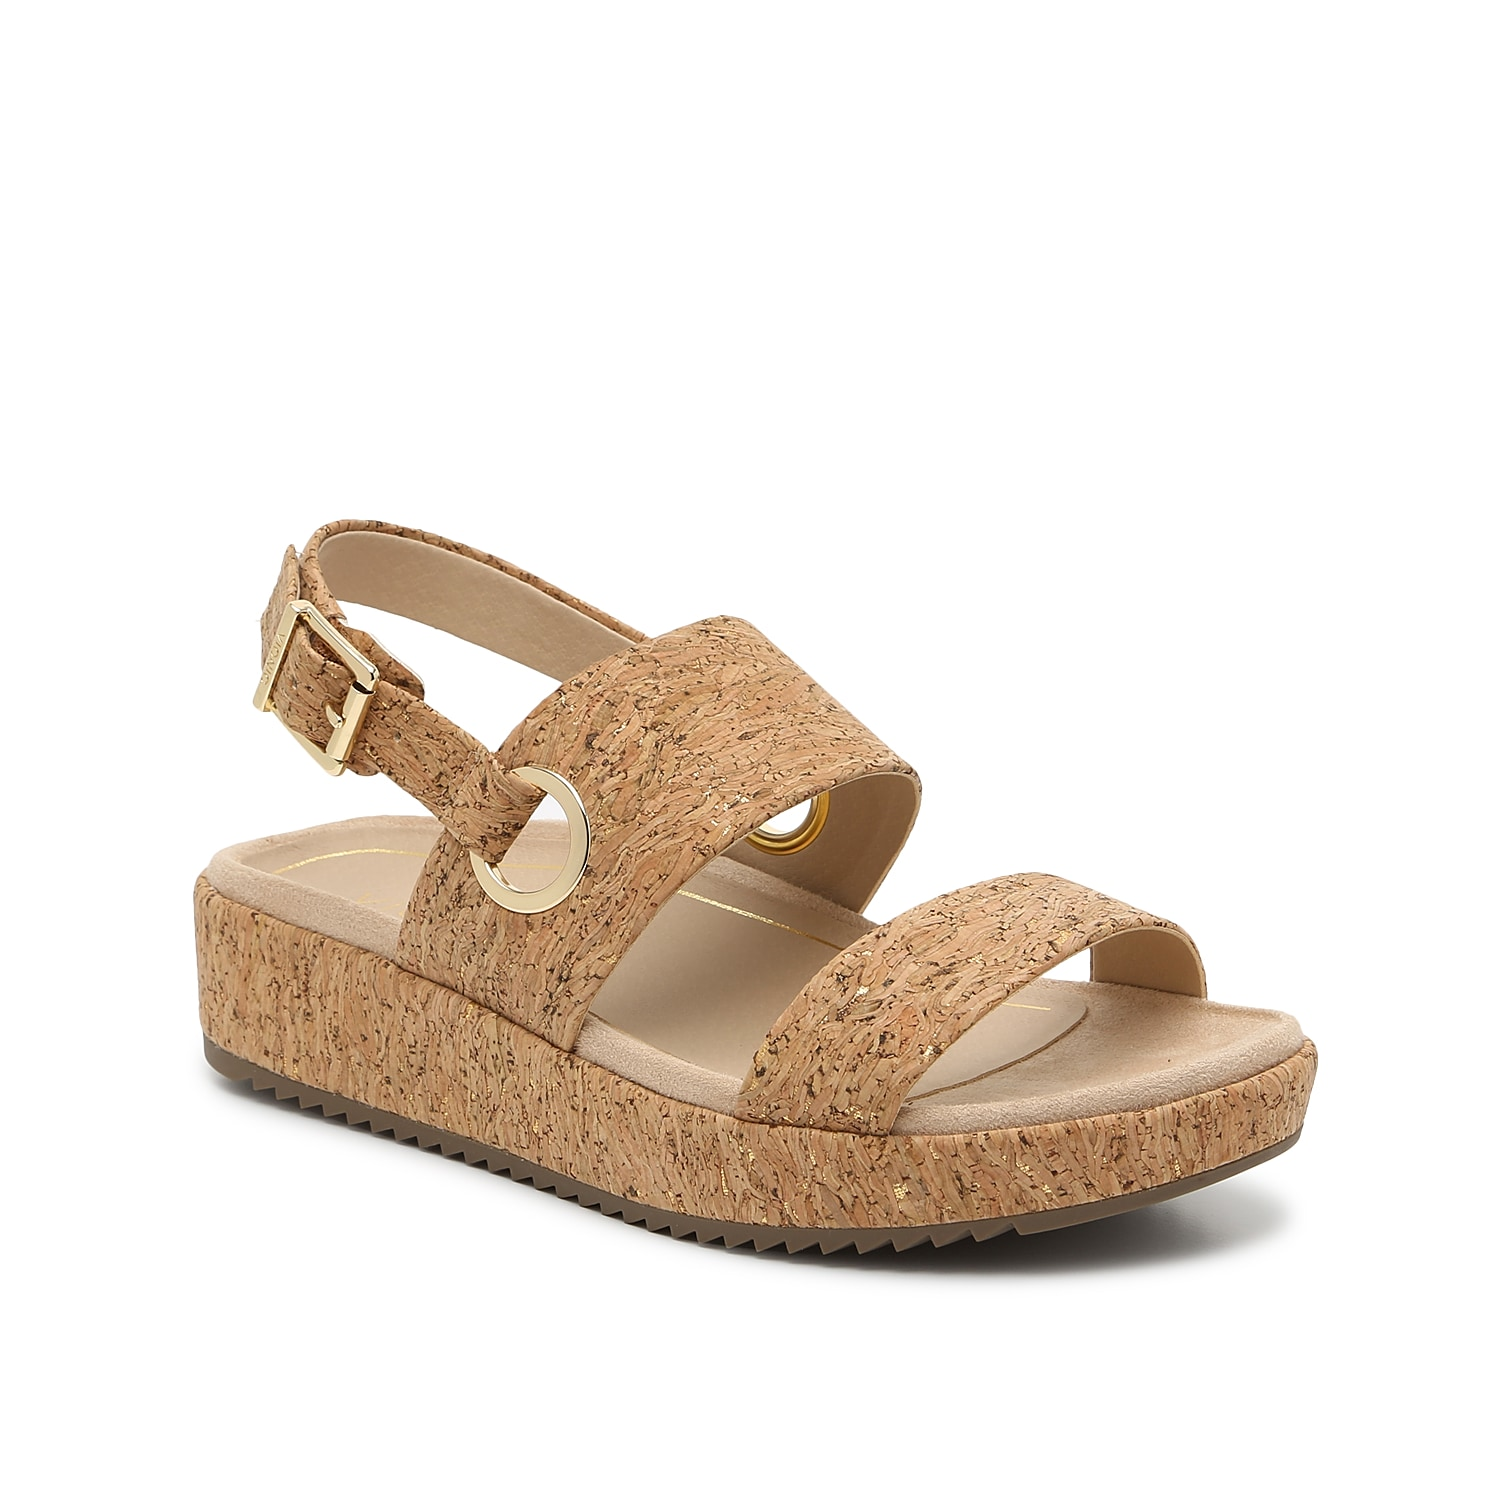 Elevate your sunny-day looks with the Louise sandals from Vionic. These platform sandals are styled with a broad straps, gold hardware, and a sporty sawtooth sole. A supportive biomechanical footbed puts your comfort first!